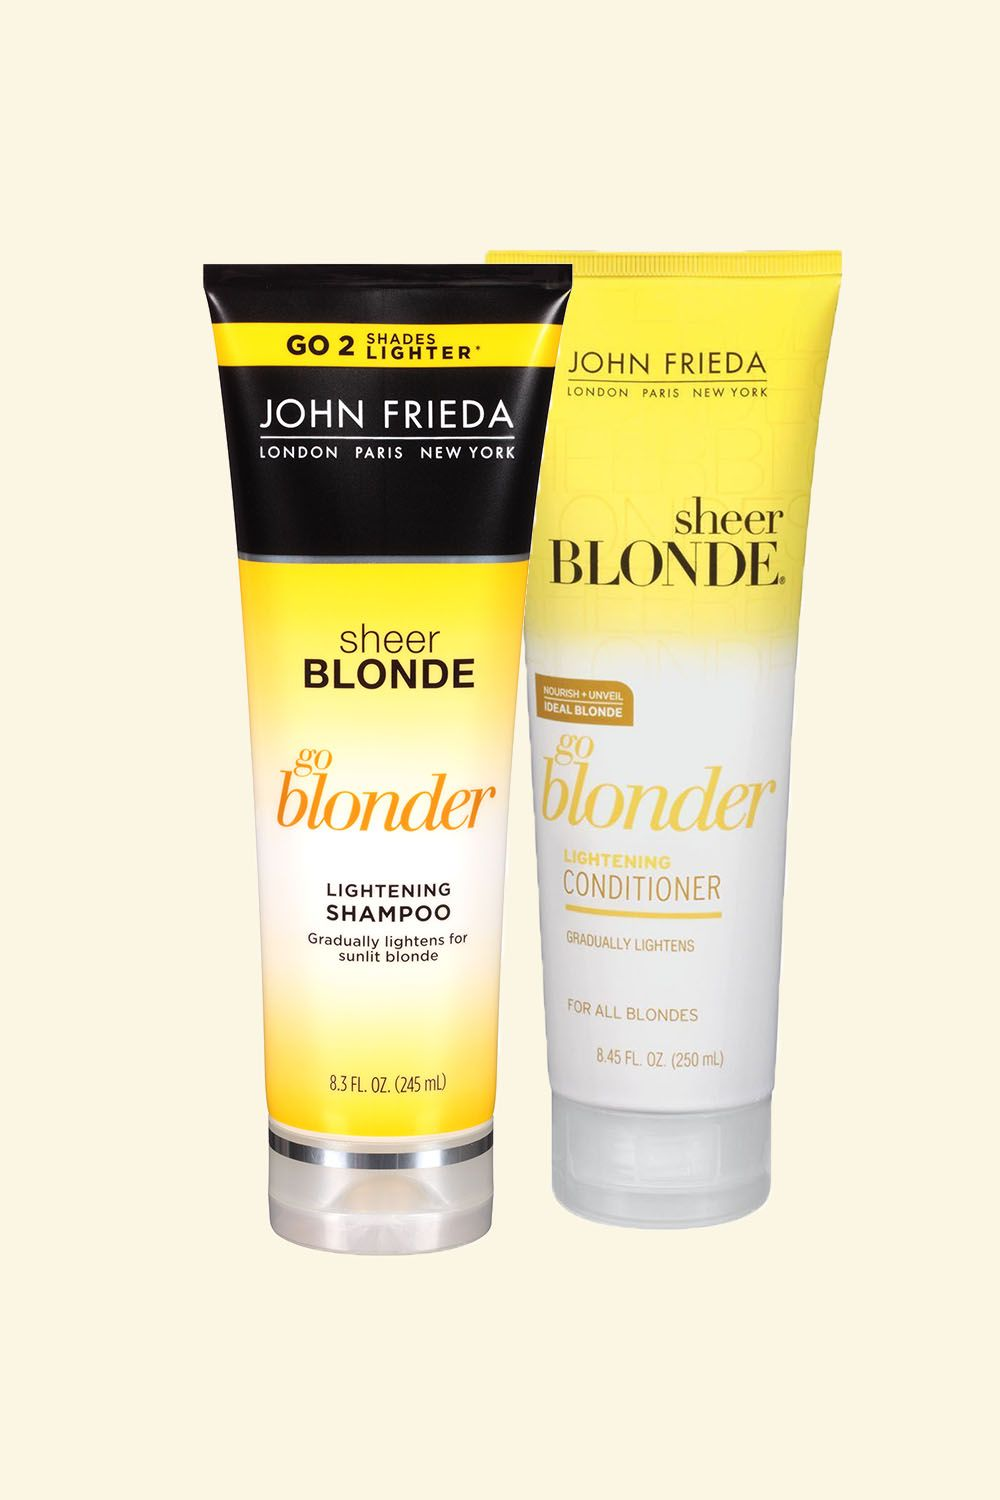 """<p>Hadid swears by this highlight-enhancing duo, which contains a natural lightening complex that *gently* reduces color pigments. Also, it makes your hair feel really soft.</p>  <p></p>  <p>John Frieda Sheer Blonde Go Blonder Lightening Shampoo, $9.99; <a href=""""http://bit.ly/2eTtv22"""" target=""""_blank"""" data-tracking-id=""""recirc-text-link"""">ulta.com</a>.</p>  <p><span data-redactor-tag=""""span""""></span>John Frieda Sheer Blonde Go Blonder Lightening Conditioner, $9.99; <a href=""""http://bit.ly/2eTr2EN"""" target=""""_blank"""" data-tracking-id=""""recirc-text-link"""">ulta.com</a>.</p>"""